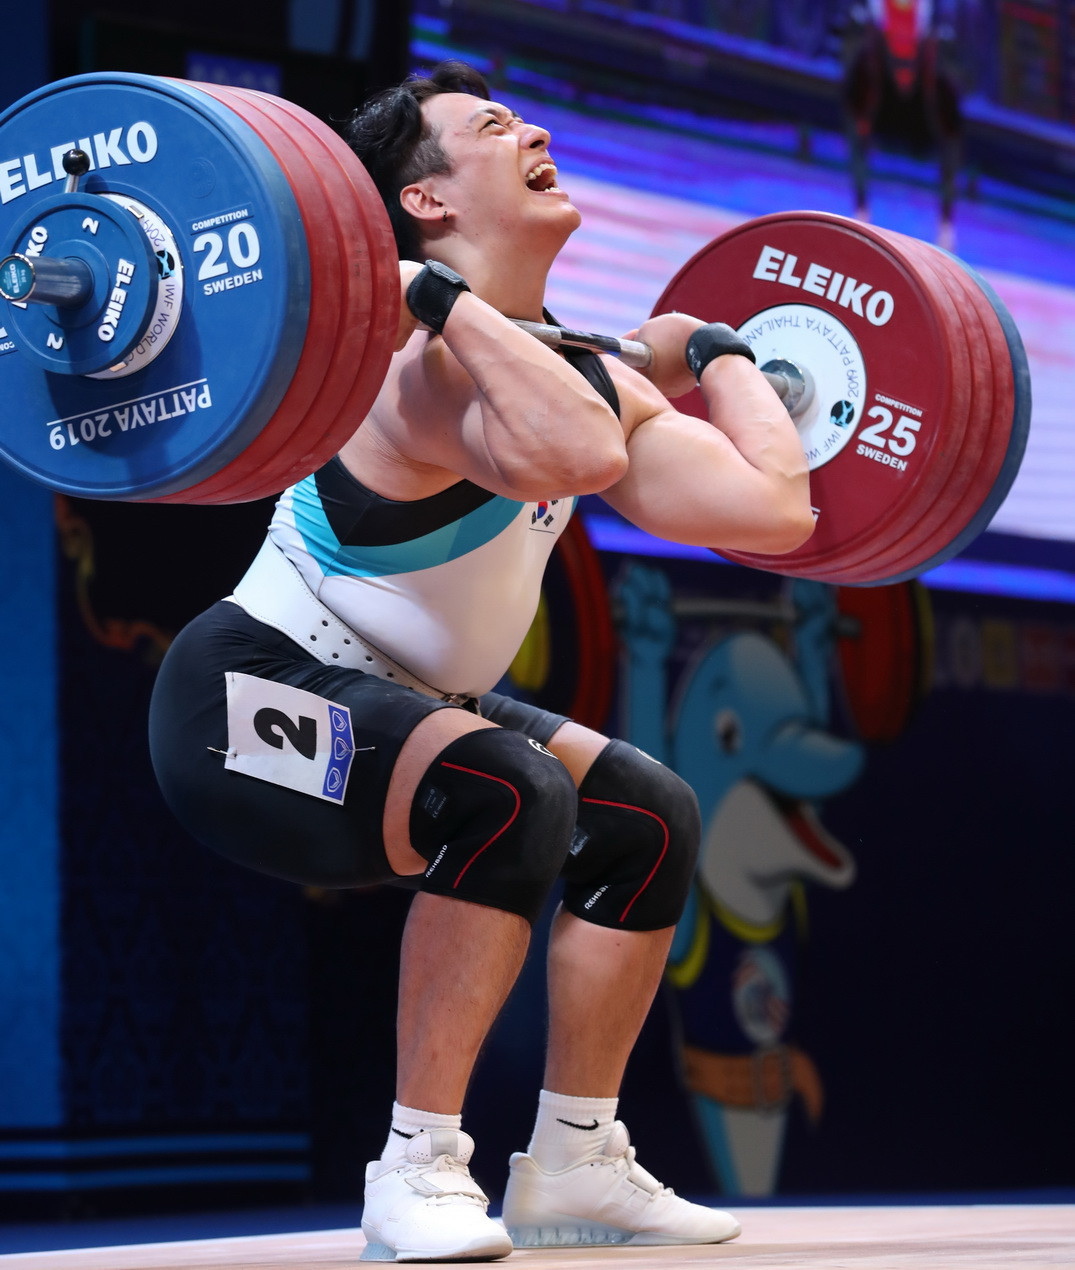 The overall silver medallist was South Korea's Jin Yunseong ©IWF